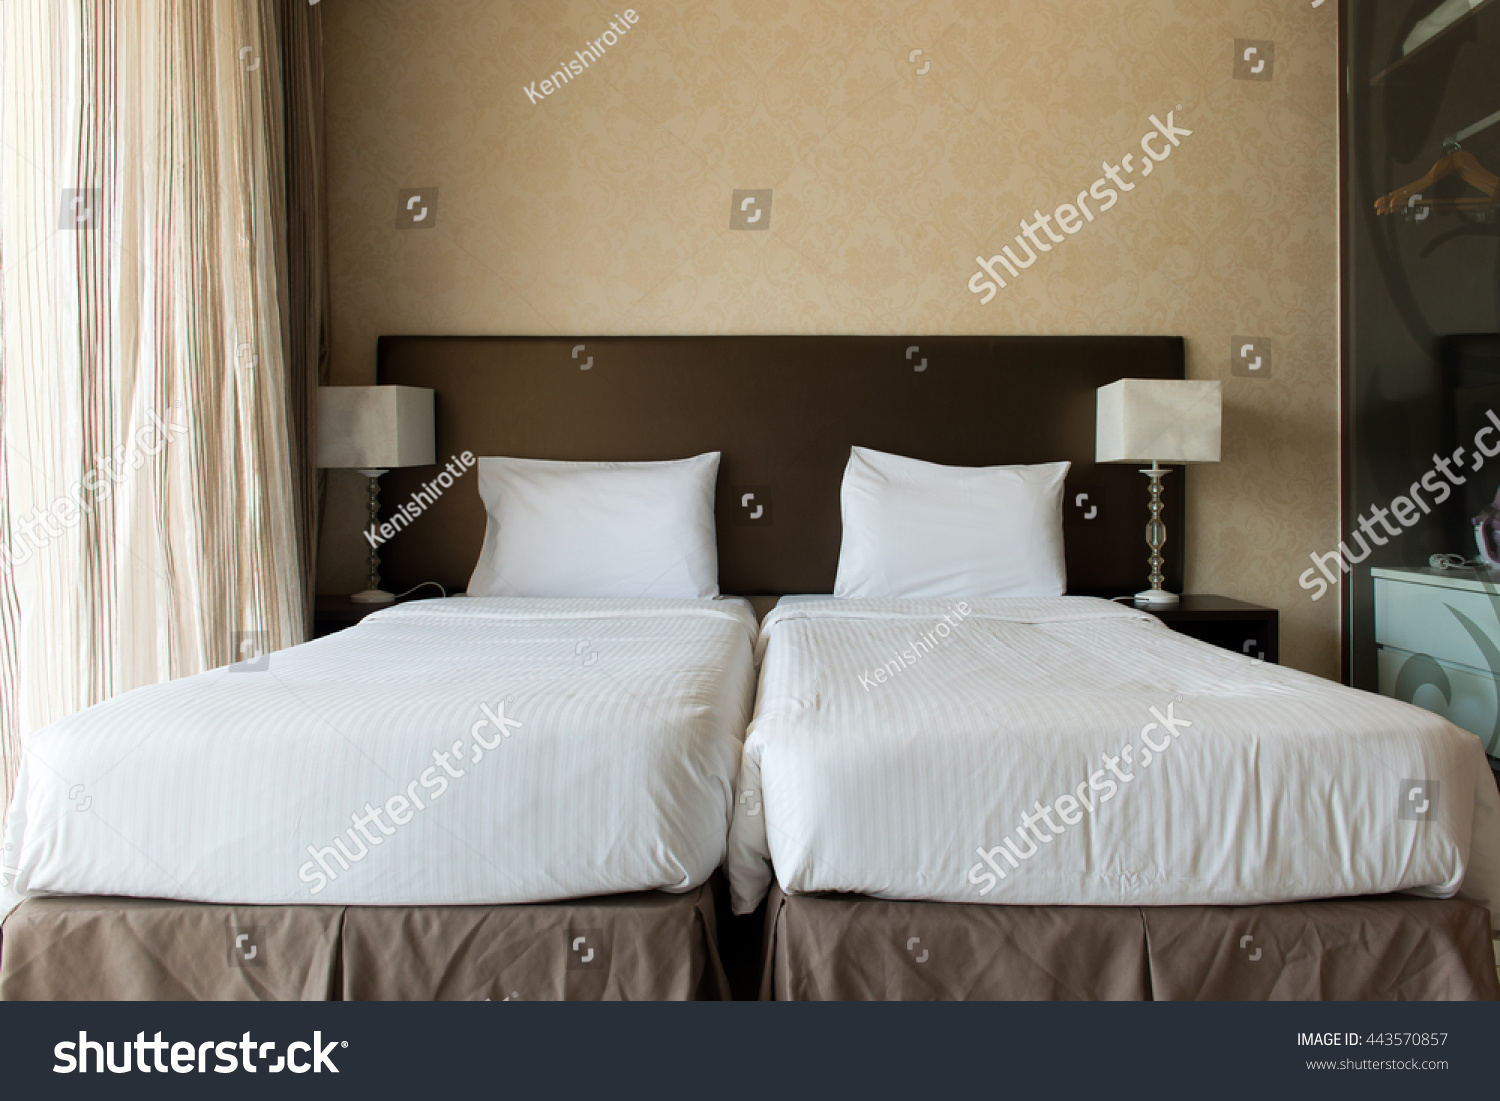 Interior Hotel Bedroom Twin Beds Putting Stock Photo (Royalty Free ...